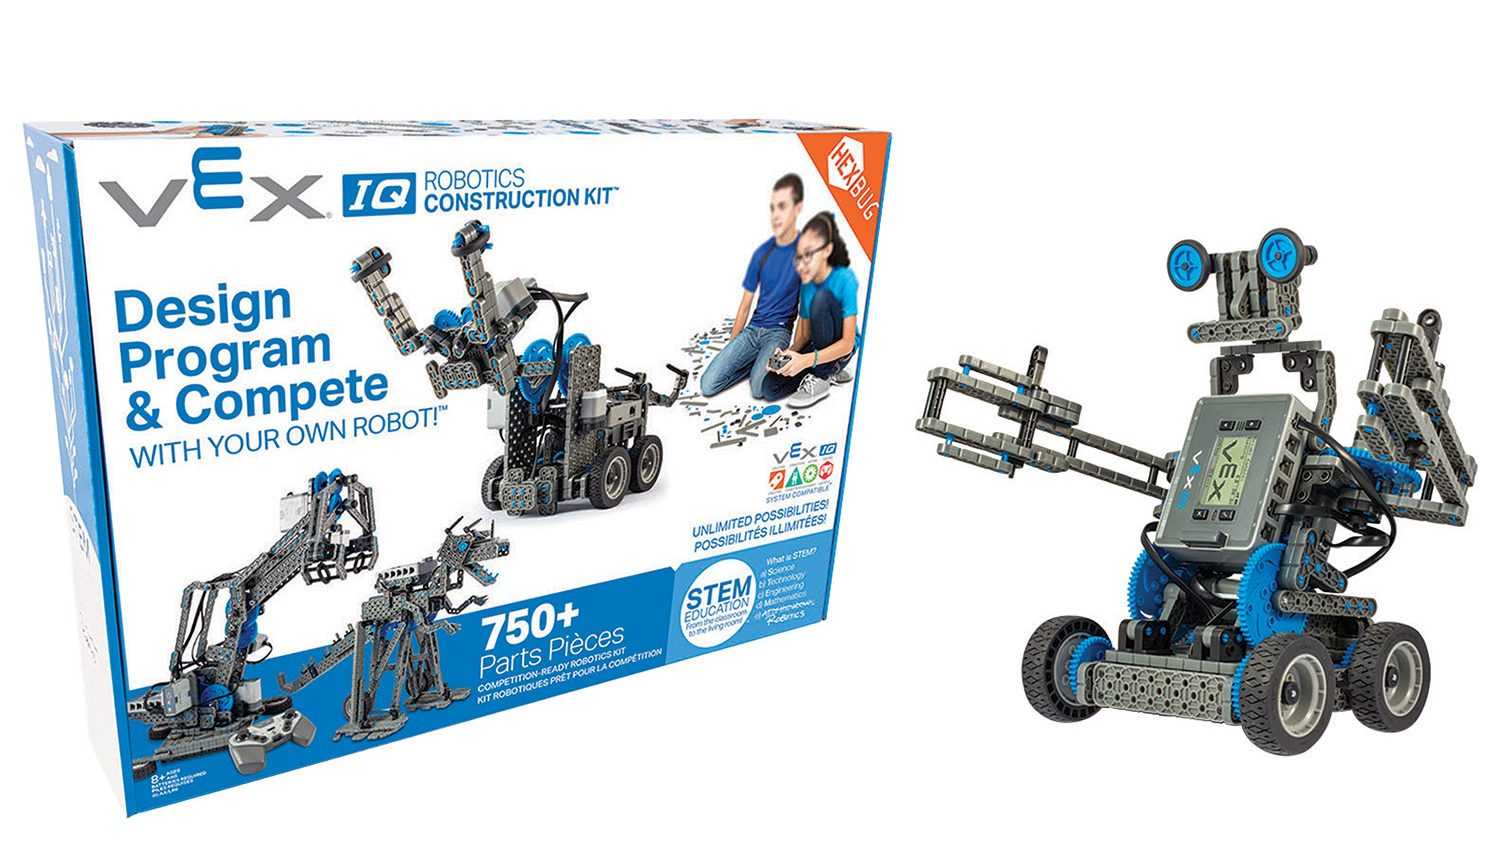 Vex Iq Robotics Construction Kit Review Best Buy Blog